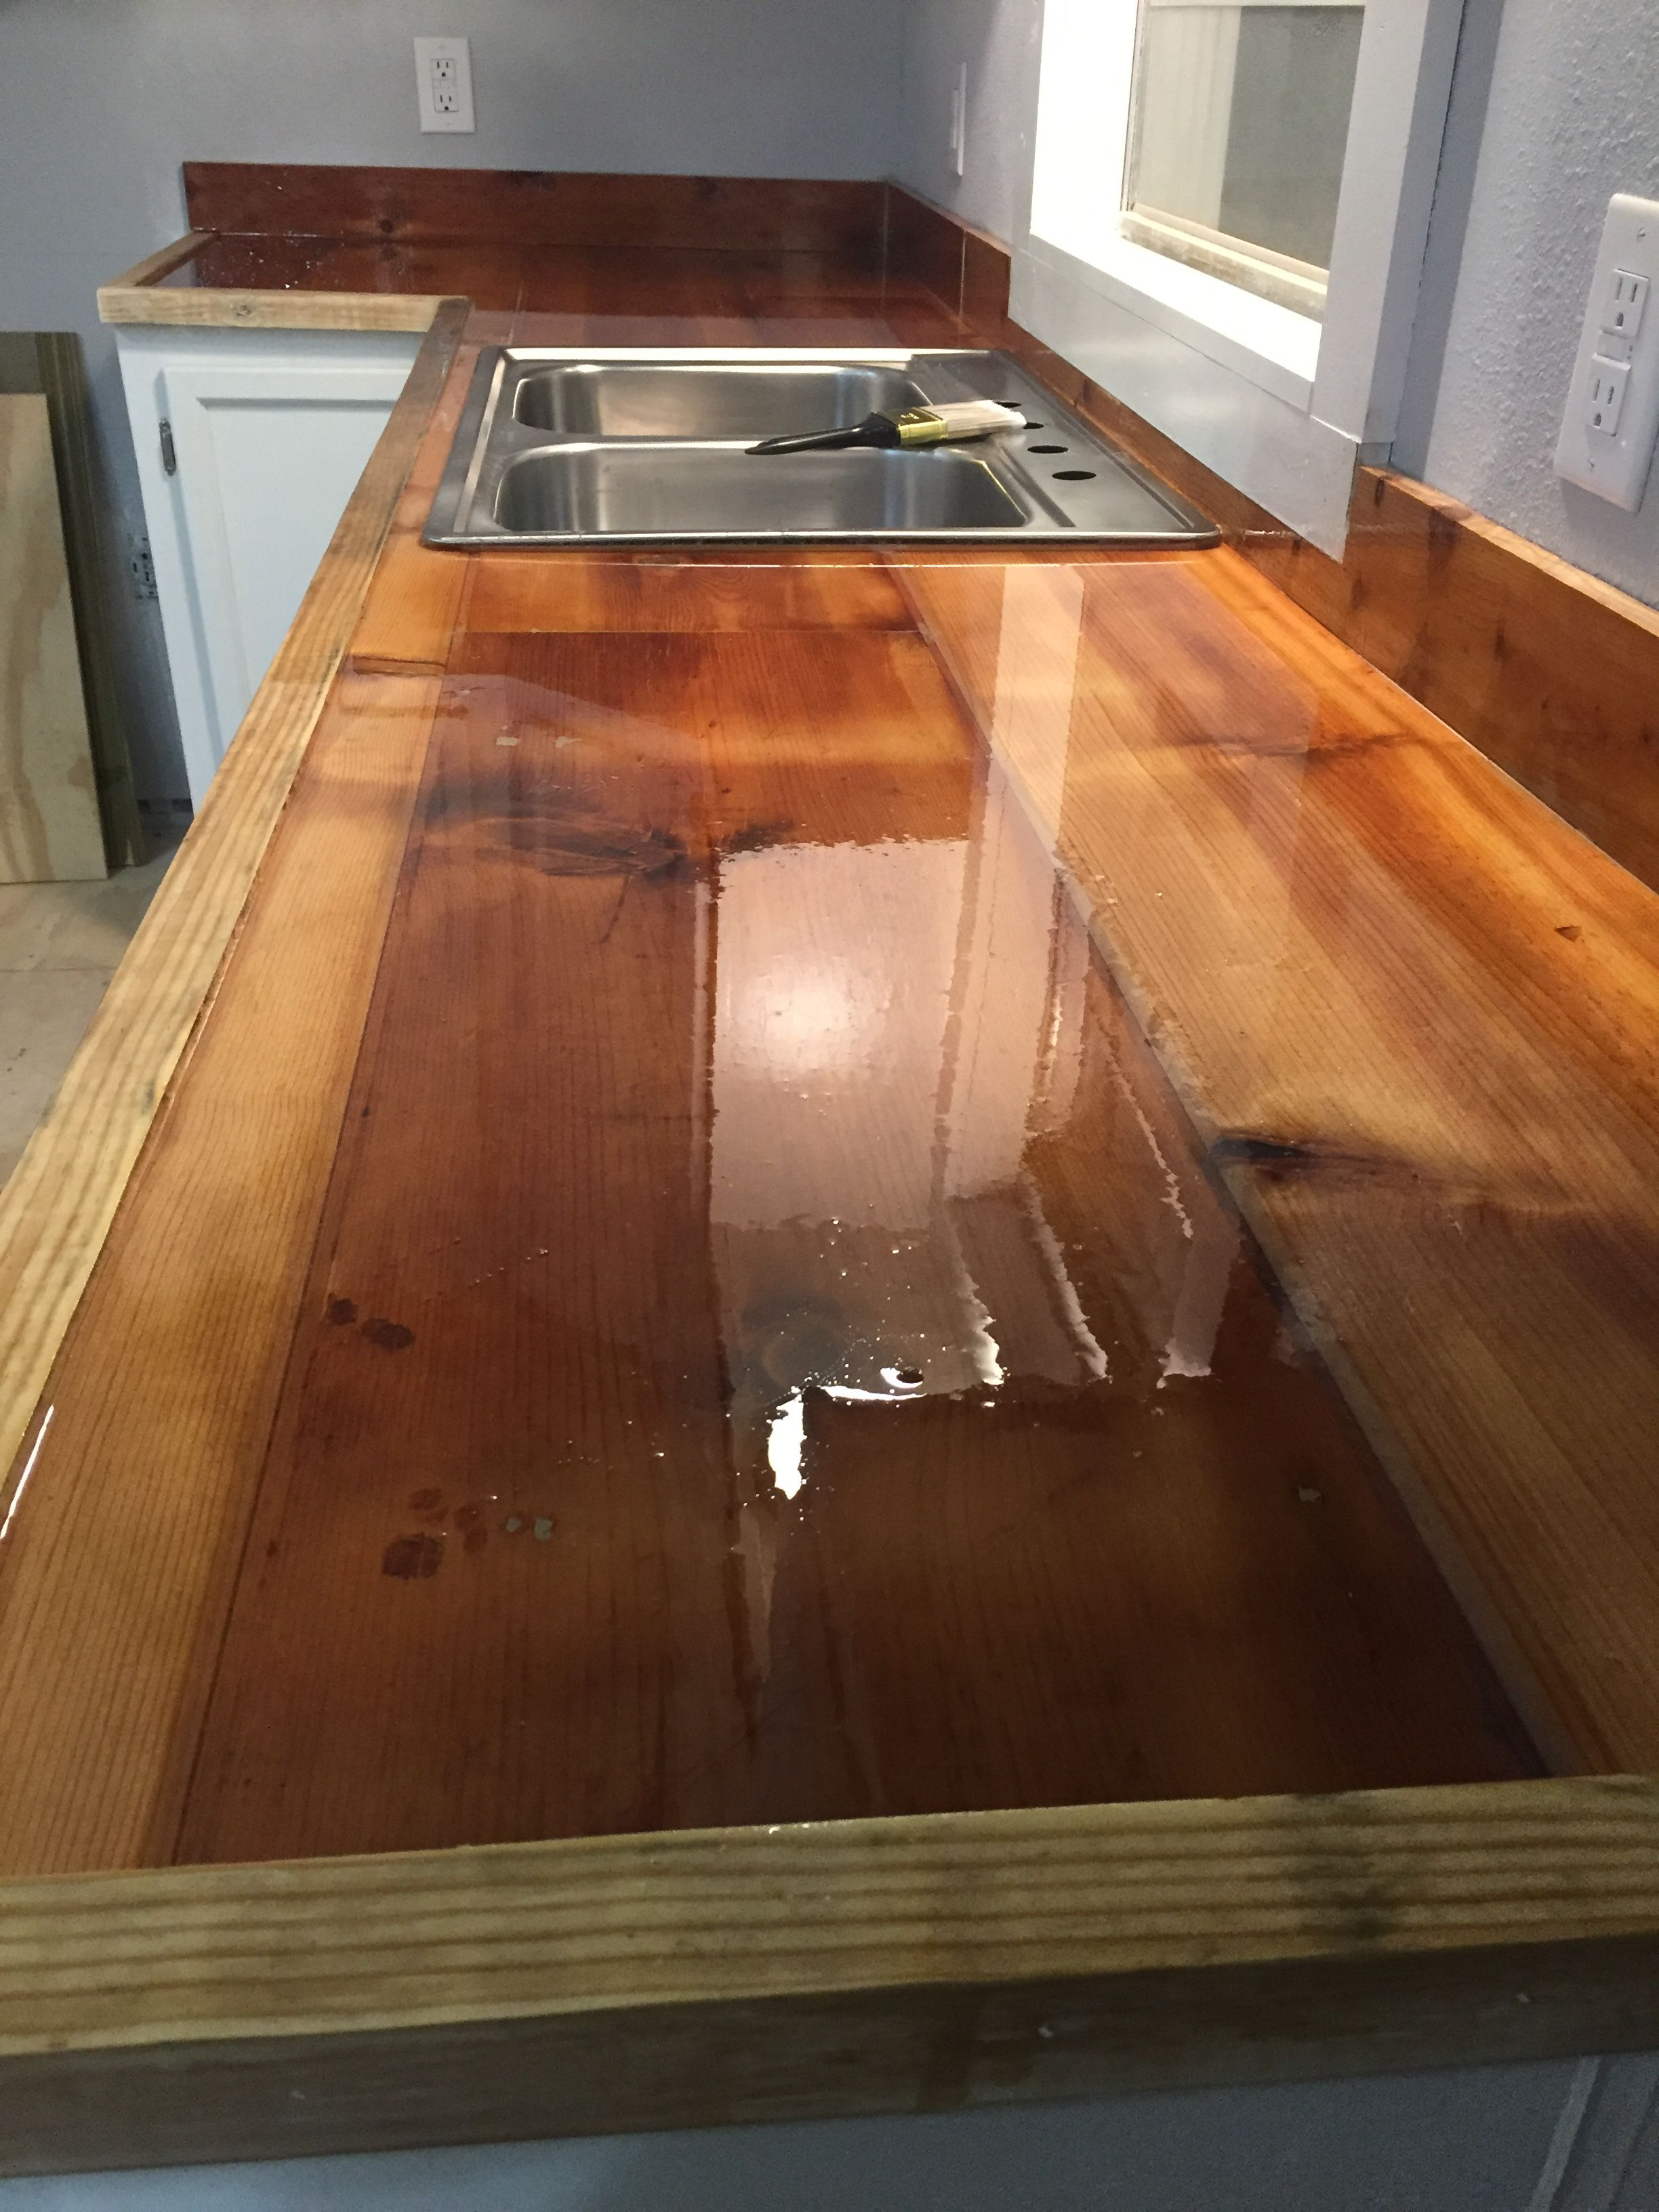 Reclaimed Wood Kitchen Countertops Sealed With Epoxy Wood Countertops Kitchen Wooden Countertops Kitchen Wooden Countertops